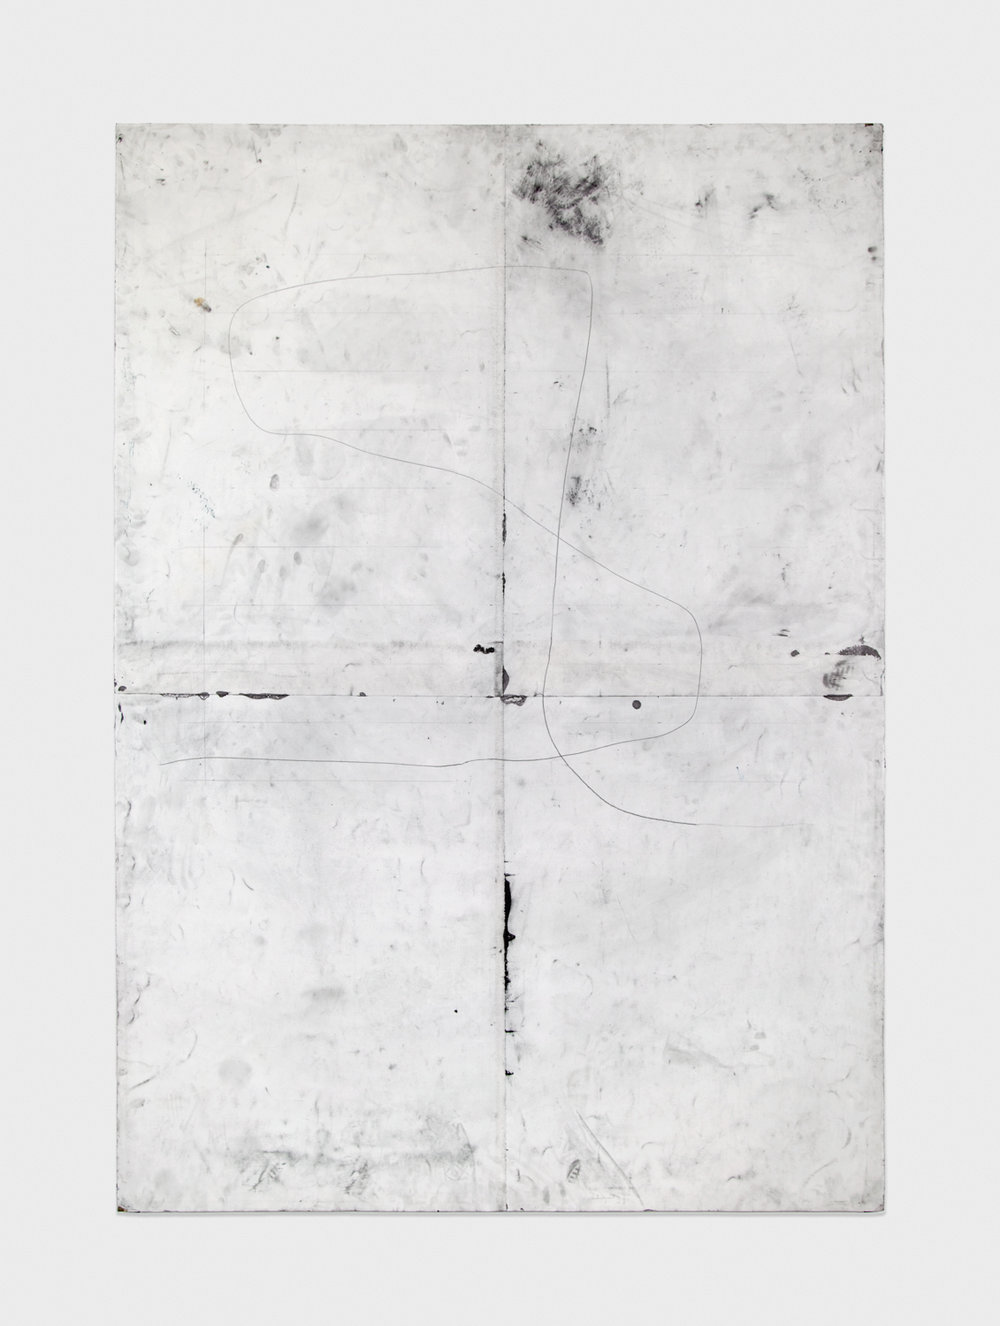 Tony Lewis –––––––– 2012 Pencil and graphite powder on paper 84h x 60w in TL010